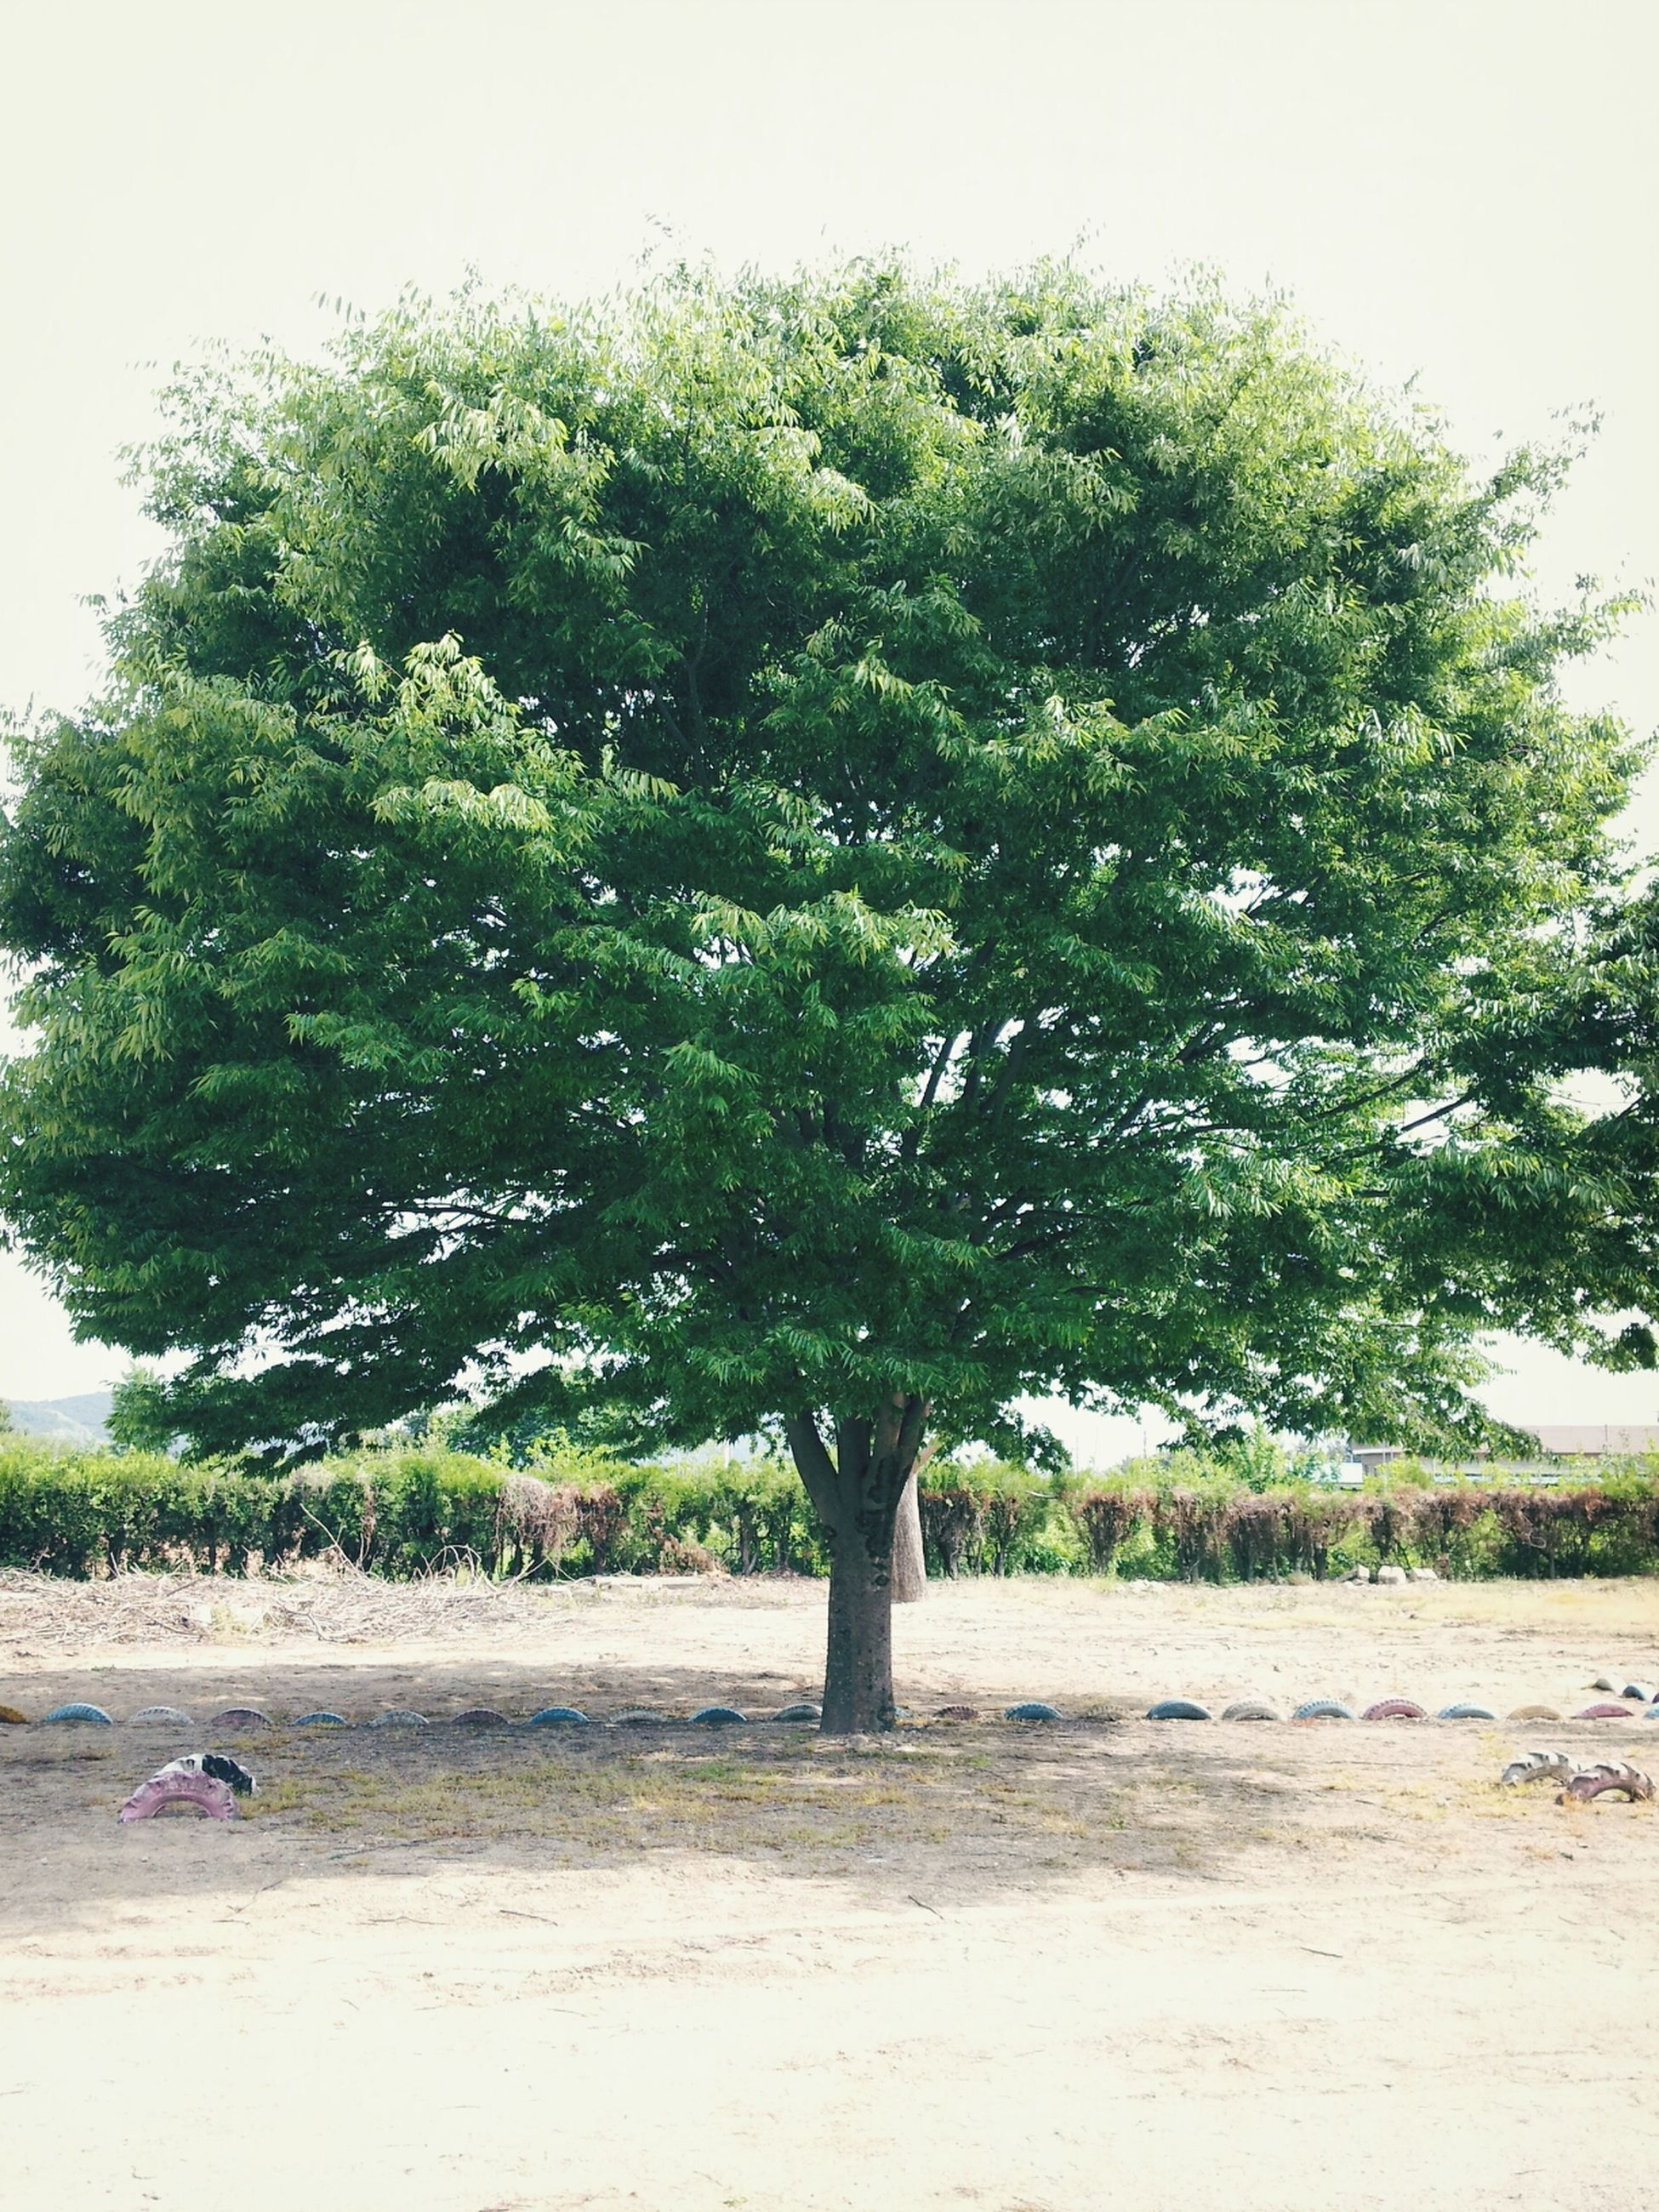 tree, growth, tranquility, nature, field, tranquil scene, beauty in nature, green color, landscape, clear sky, day, sunlight, branch, outdoors, scenics, sky, grass, park - man made space, plant, tree trunk